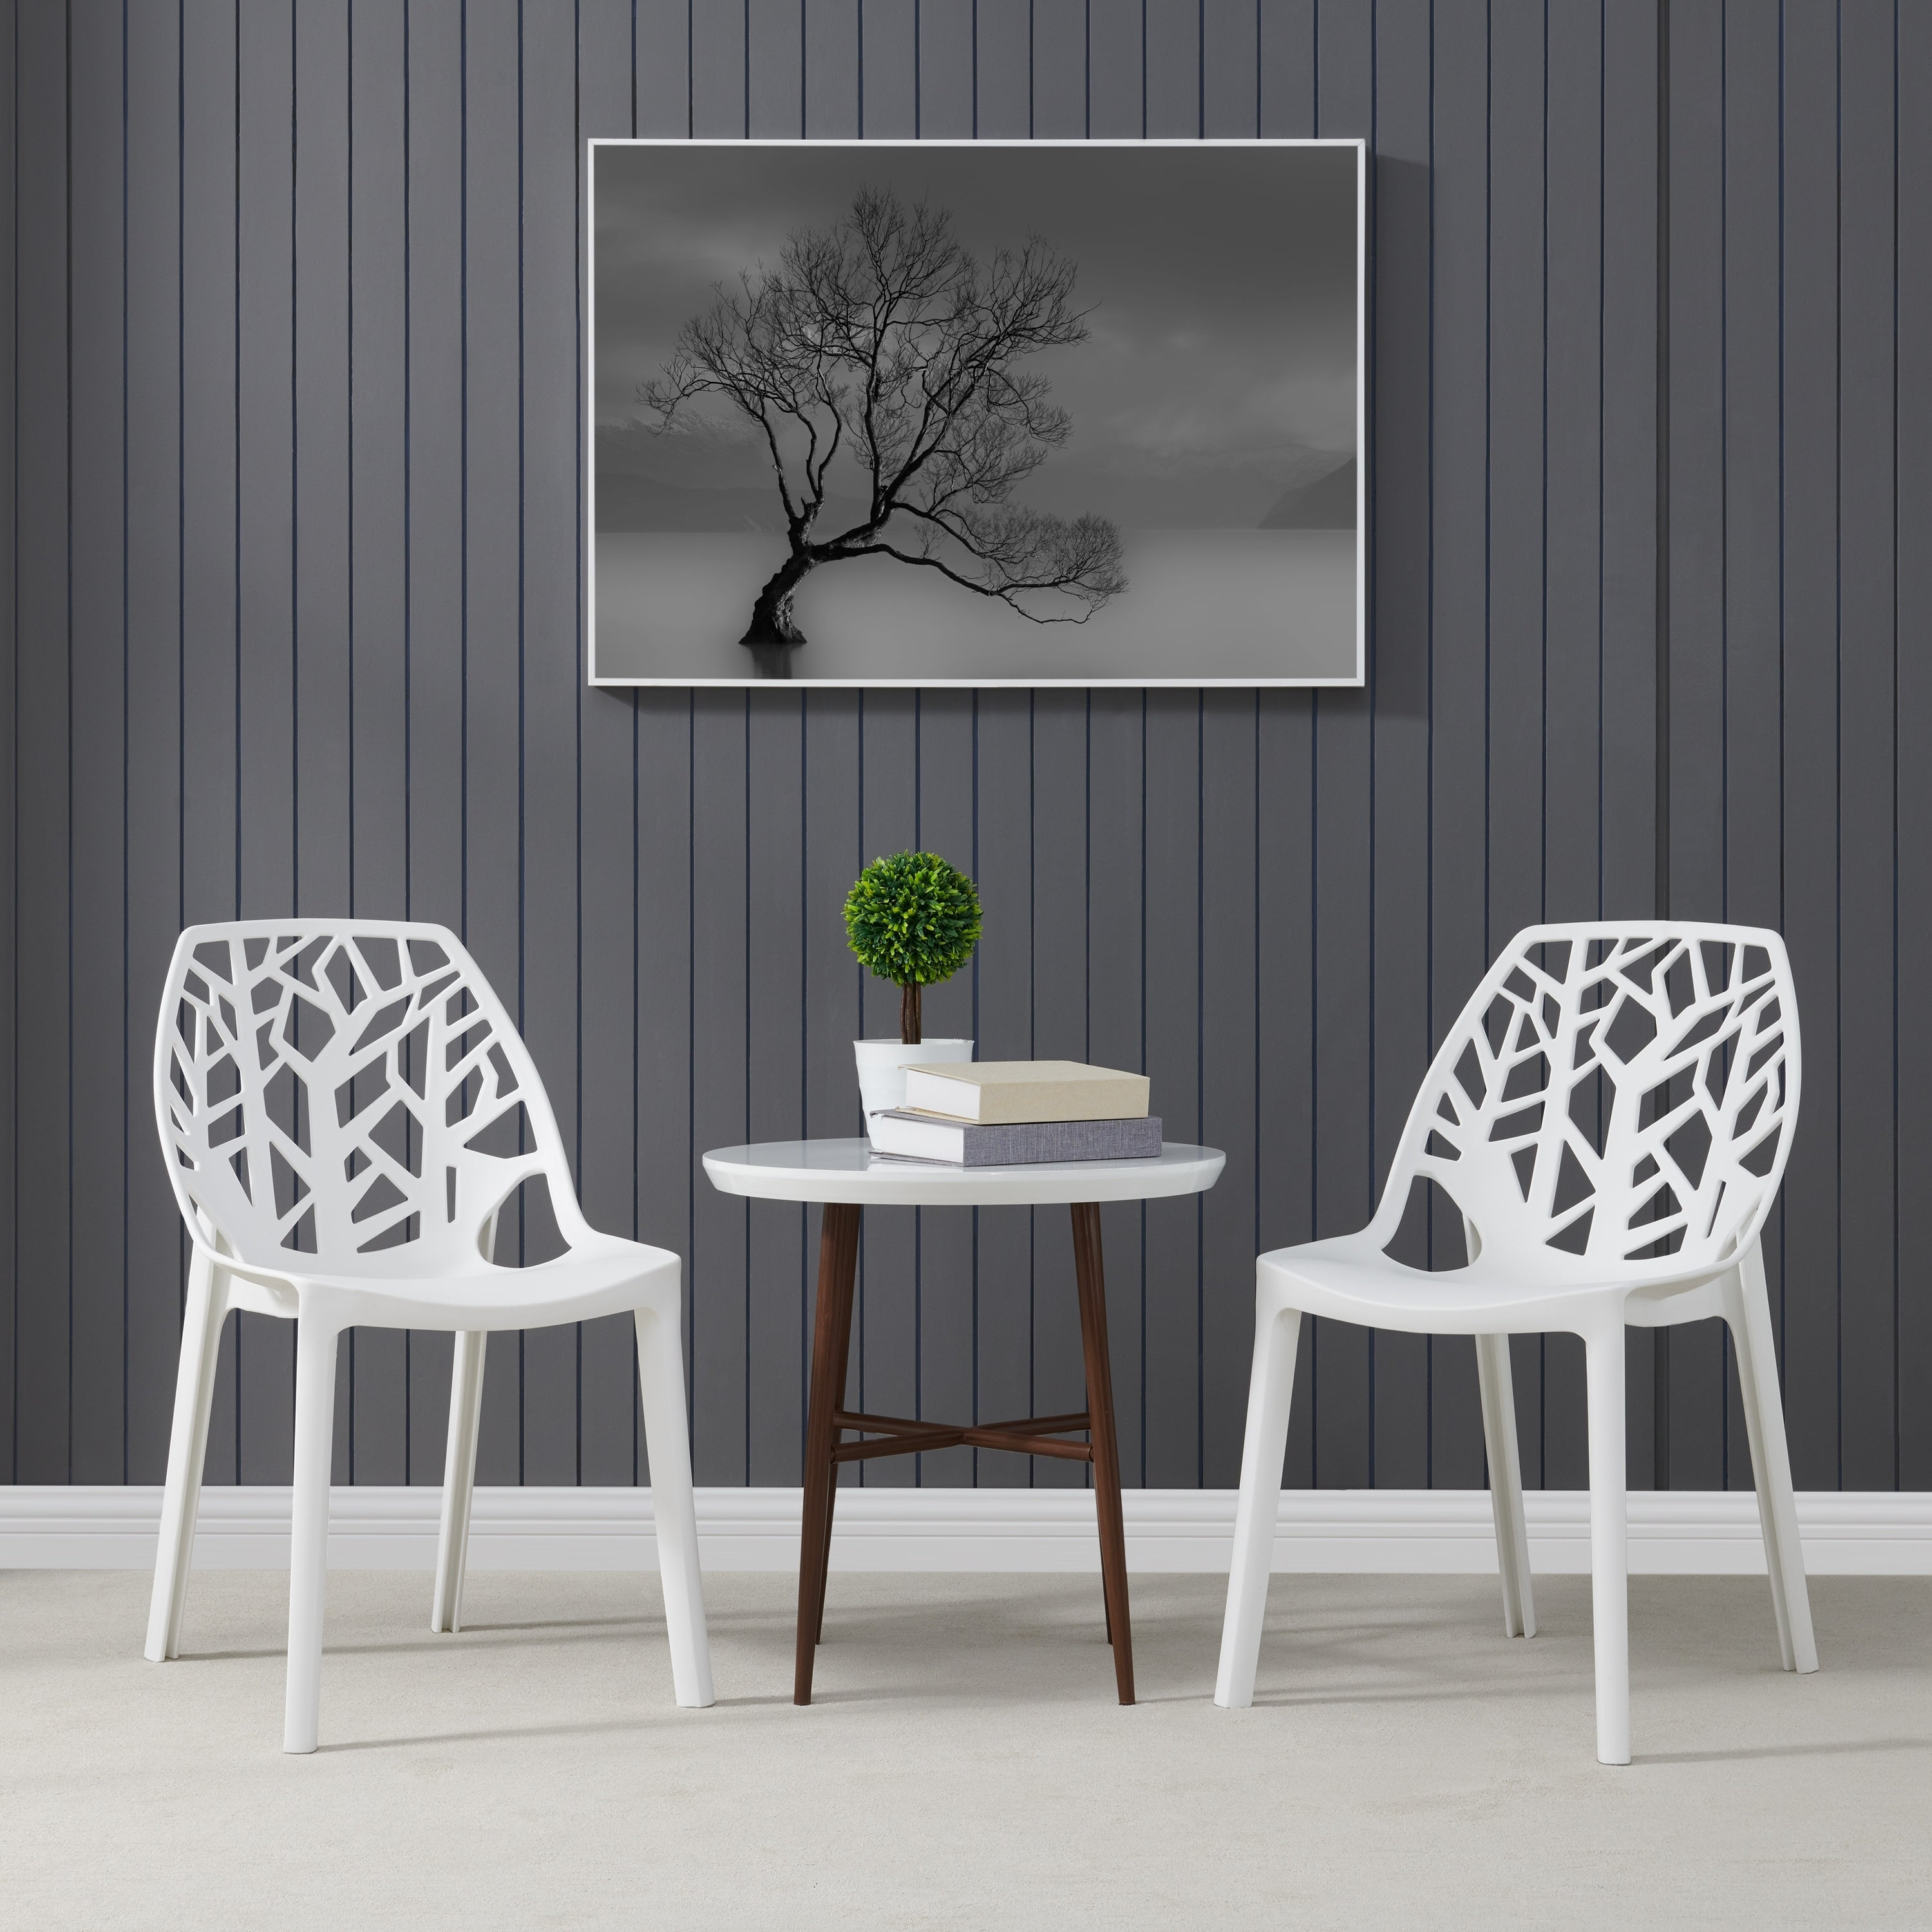 Shop Havenside Home Espenberg Armless Indoor/Outdoor Resin Modern Tree  Dining Chairs (Set Of 2)   On Sale   Free Shipping Today   Overstock    27388882